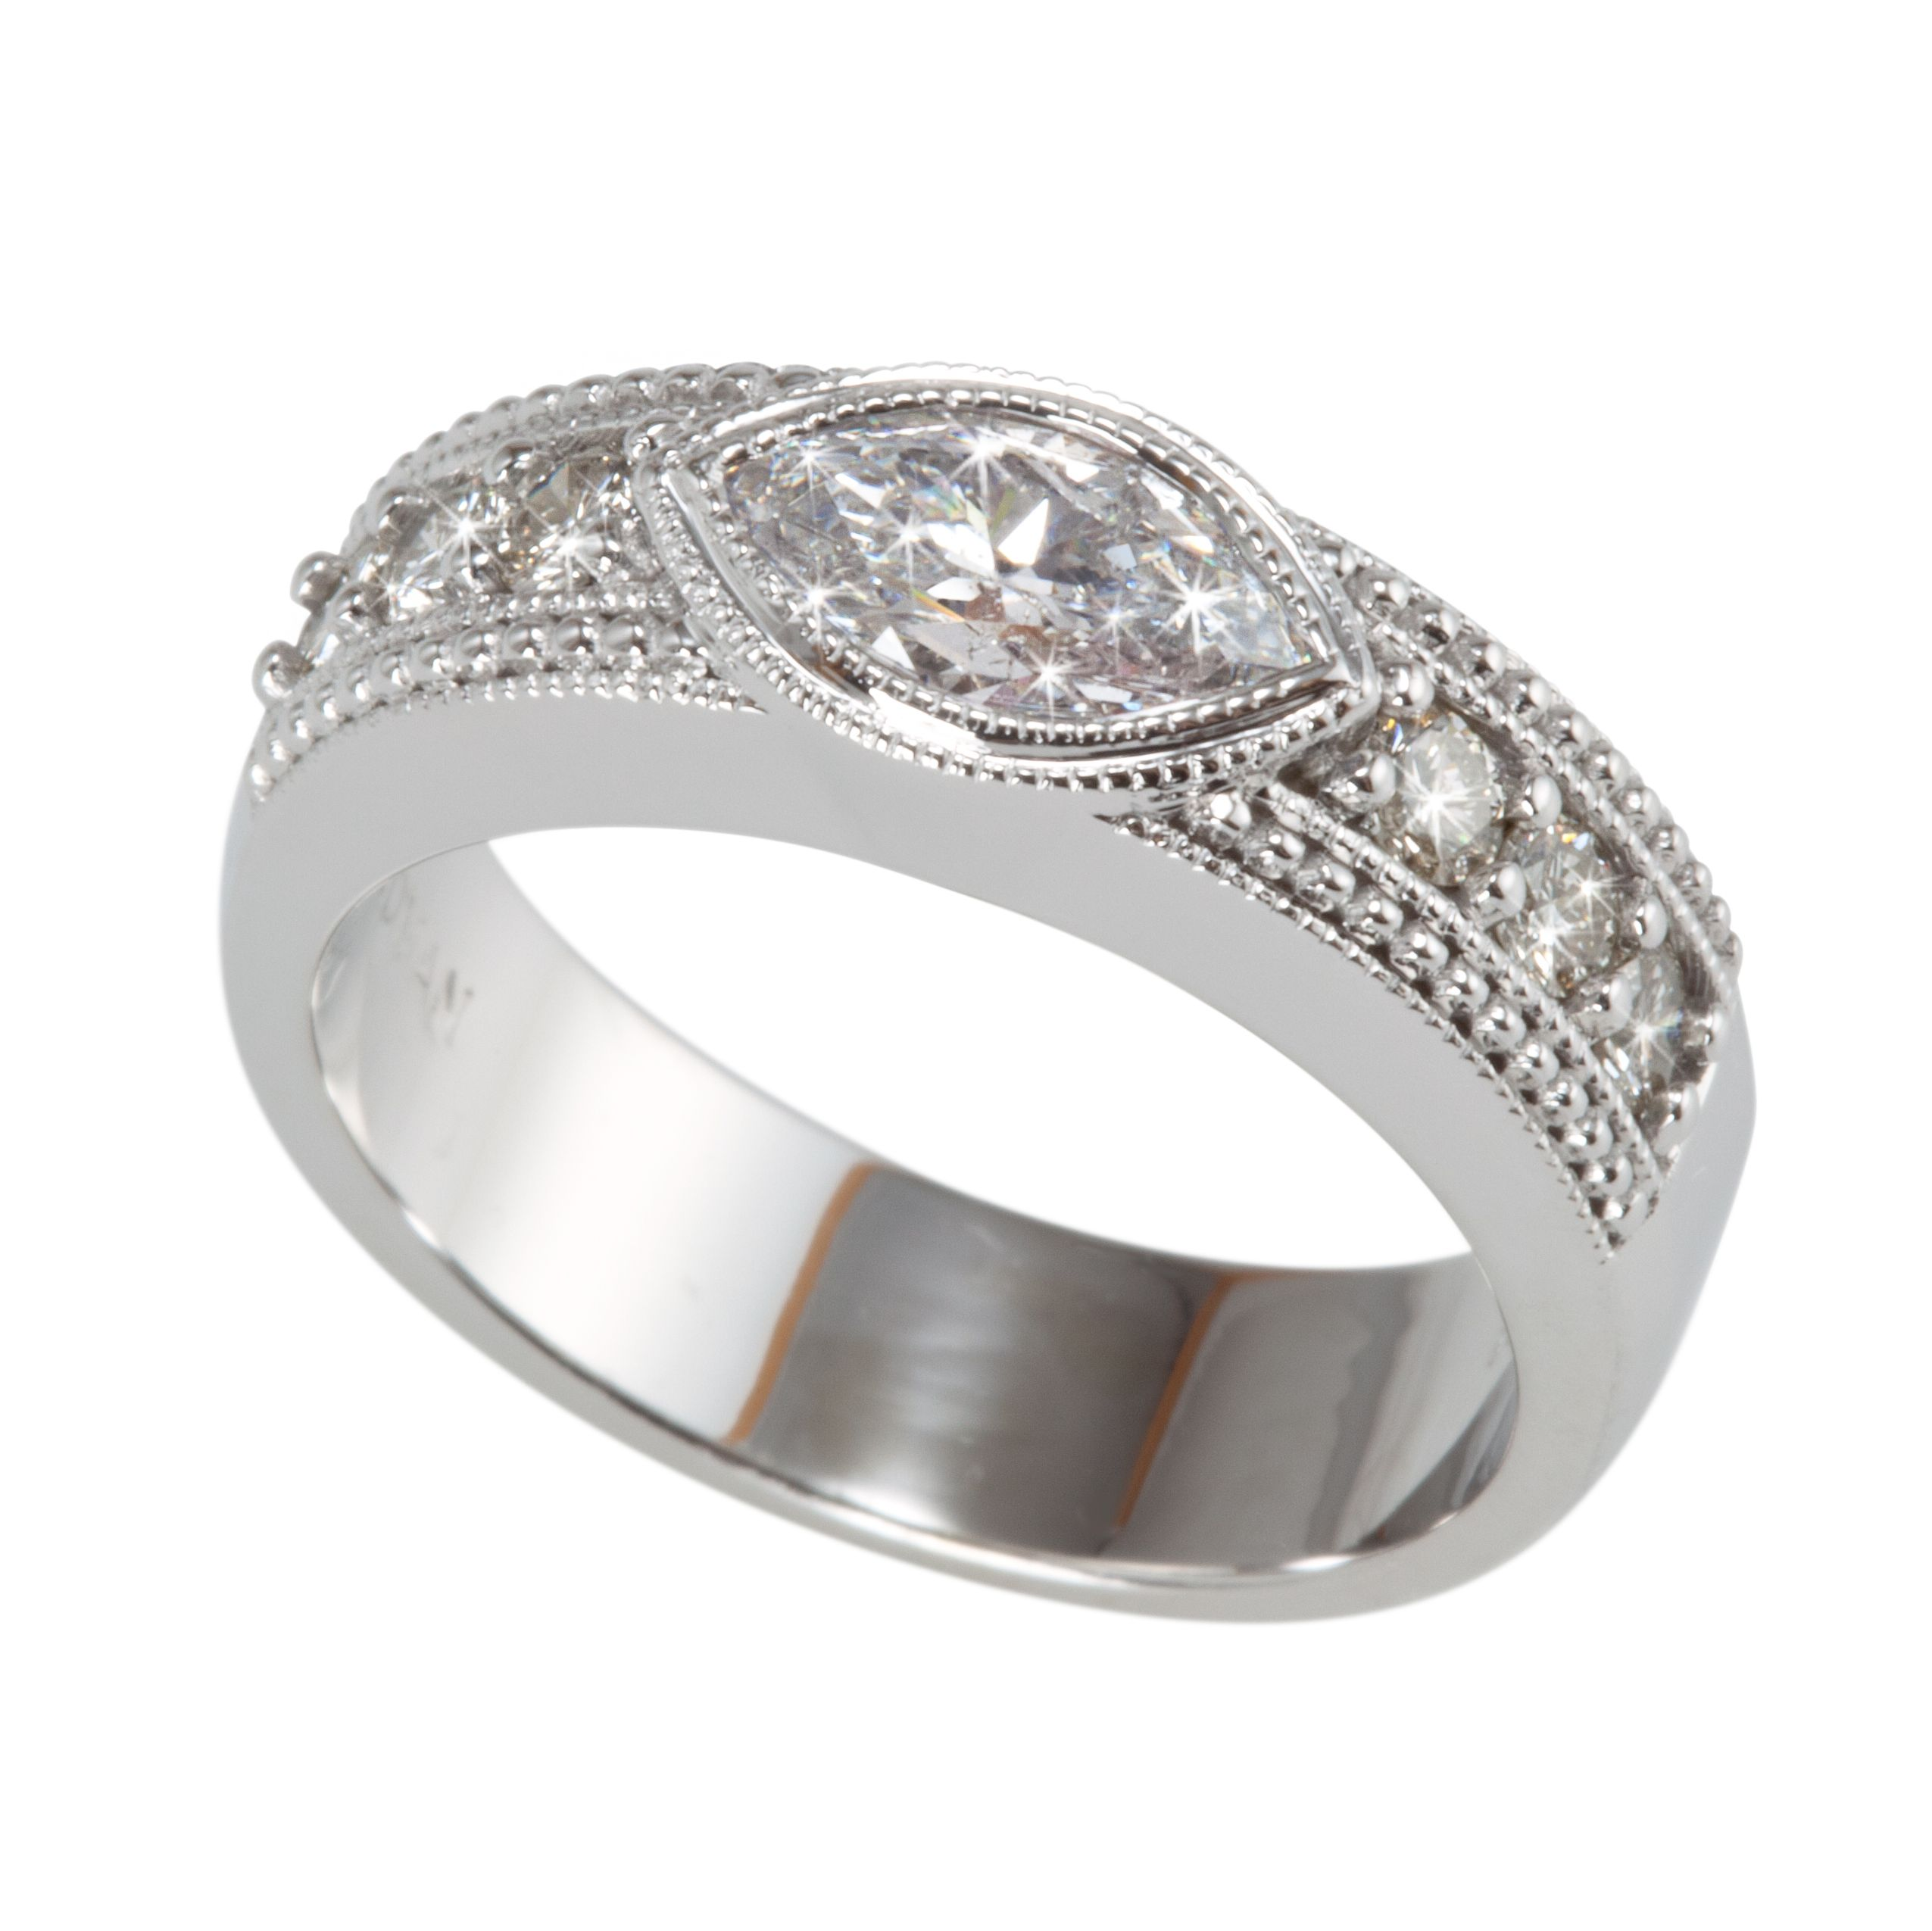 Design A Beautiful Ring With Your Marquis Diamond